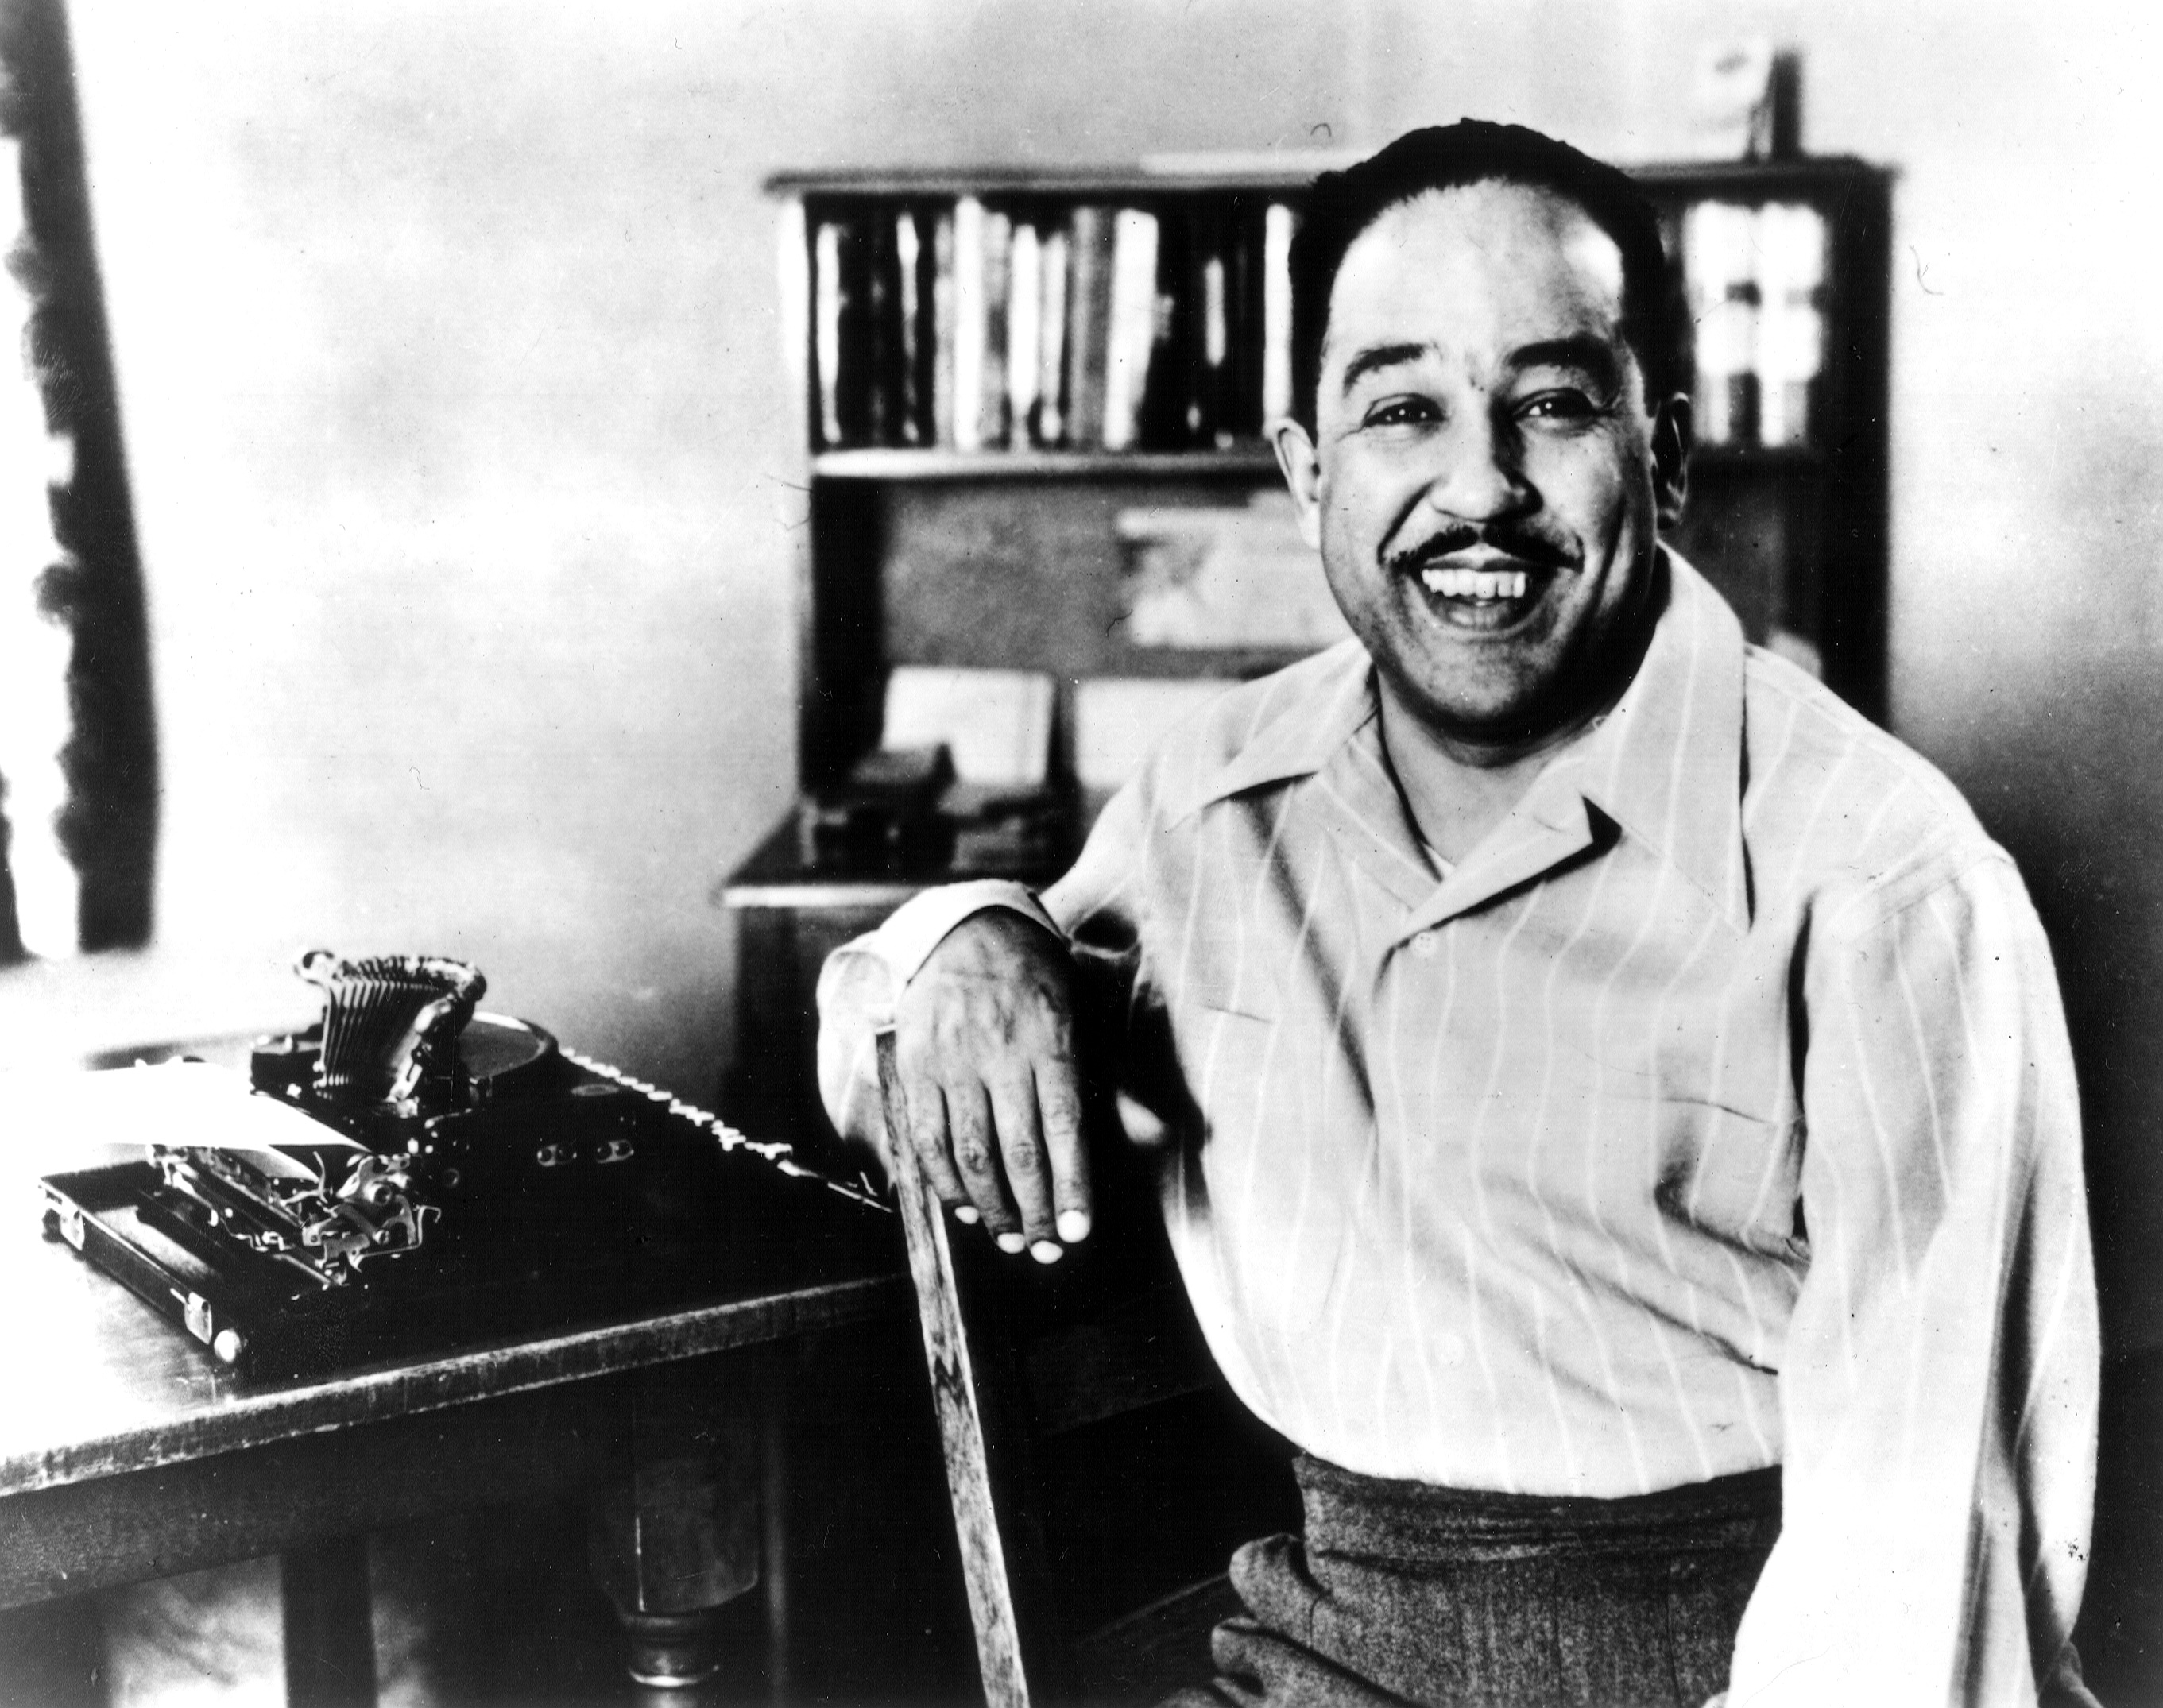 """the life and poetry work of james langston hughes Known as the shakespeare in harlem and the poet laureate of the negro race, langston hughes was a wonderful literary asset for americans hughes chose to focus his work on modern, urban black life and many of his poem's """"demanded that african americans be acknowledged as owners of the culture they gave to the united states and as fully ."""